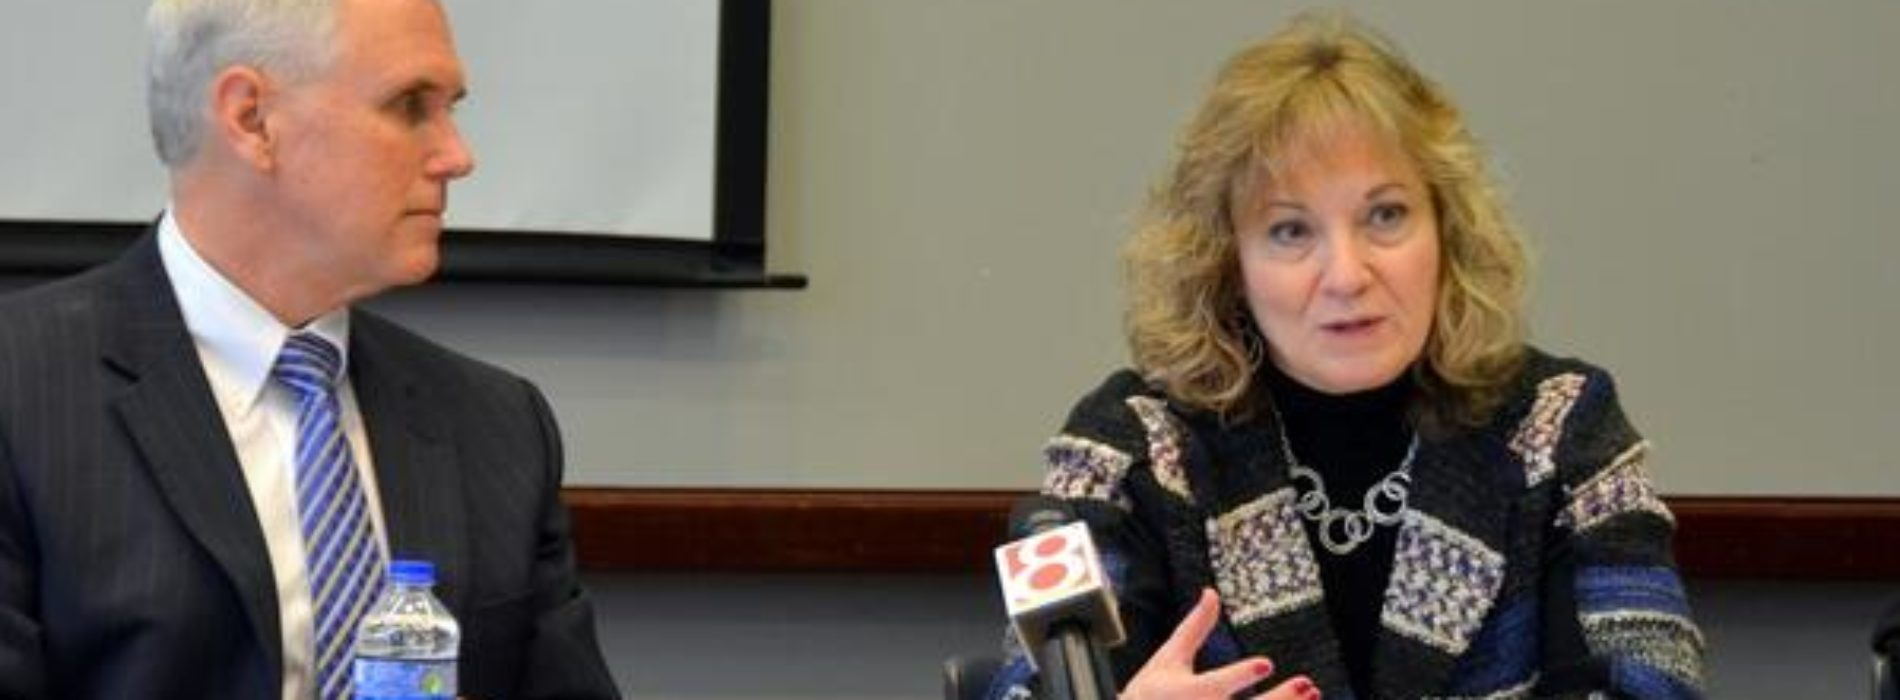 Never Forget: Glenda Ritz and the Election that Lit My Political Fire